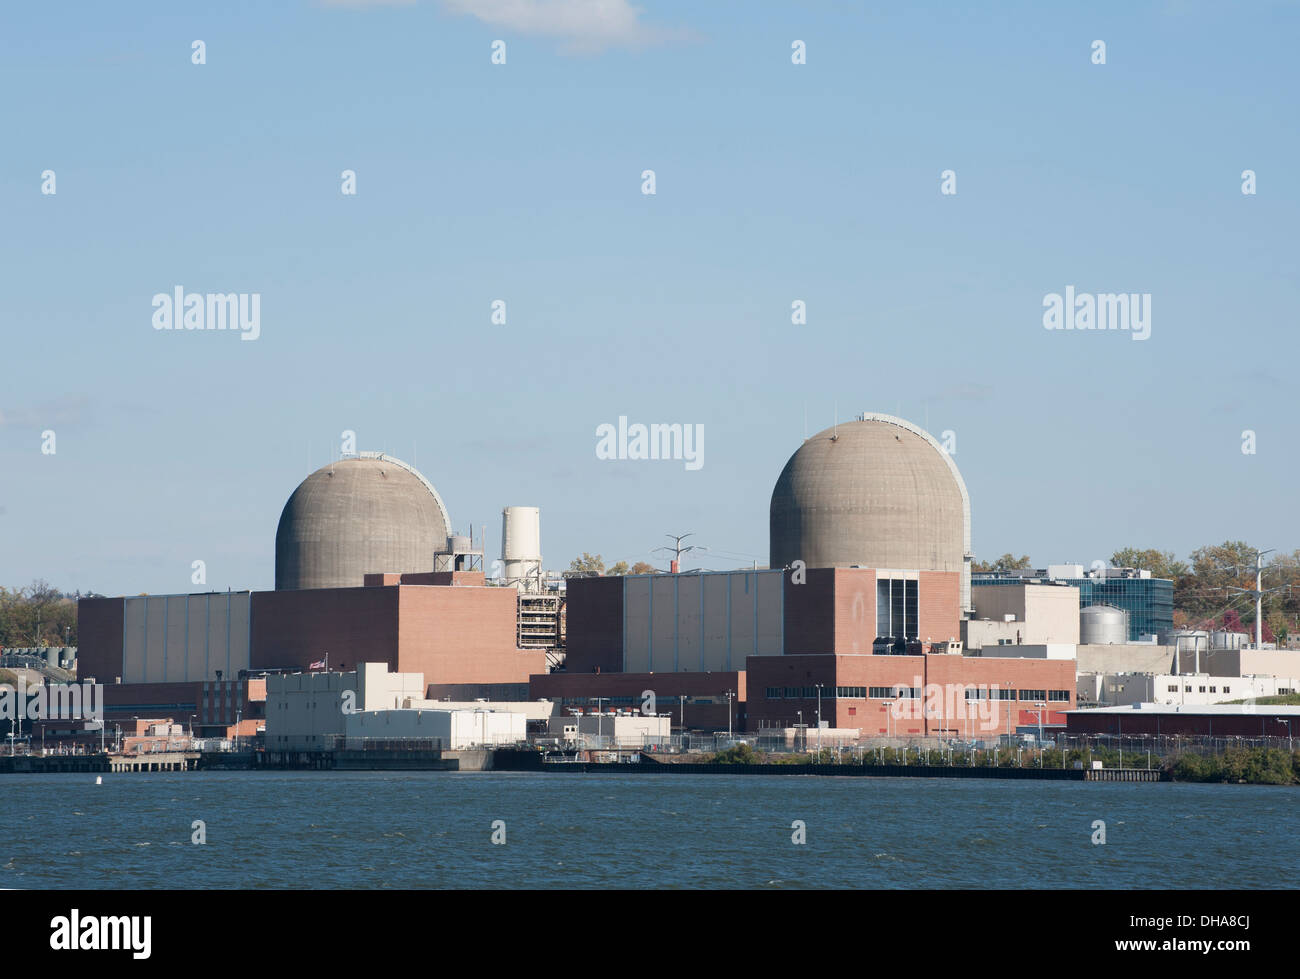 The Indian Point Energy Center — a nuclear reactor — is on the Hudson River around 35 miles north of New York City. - Stock Image